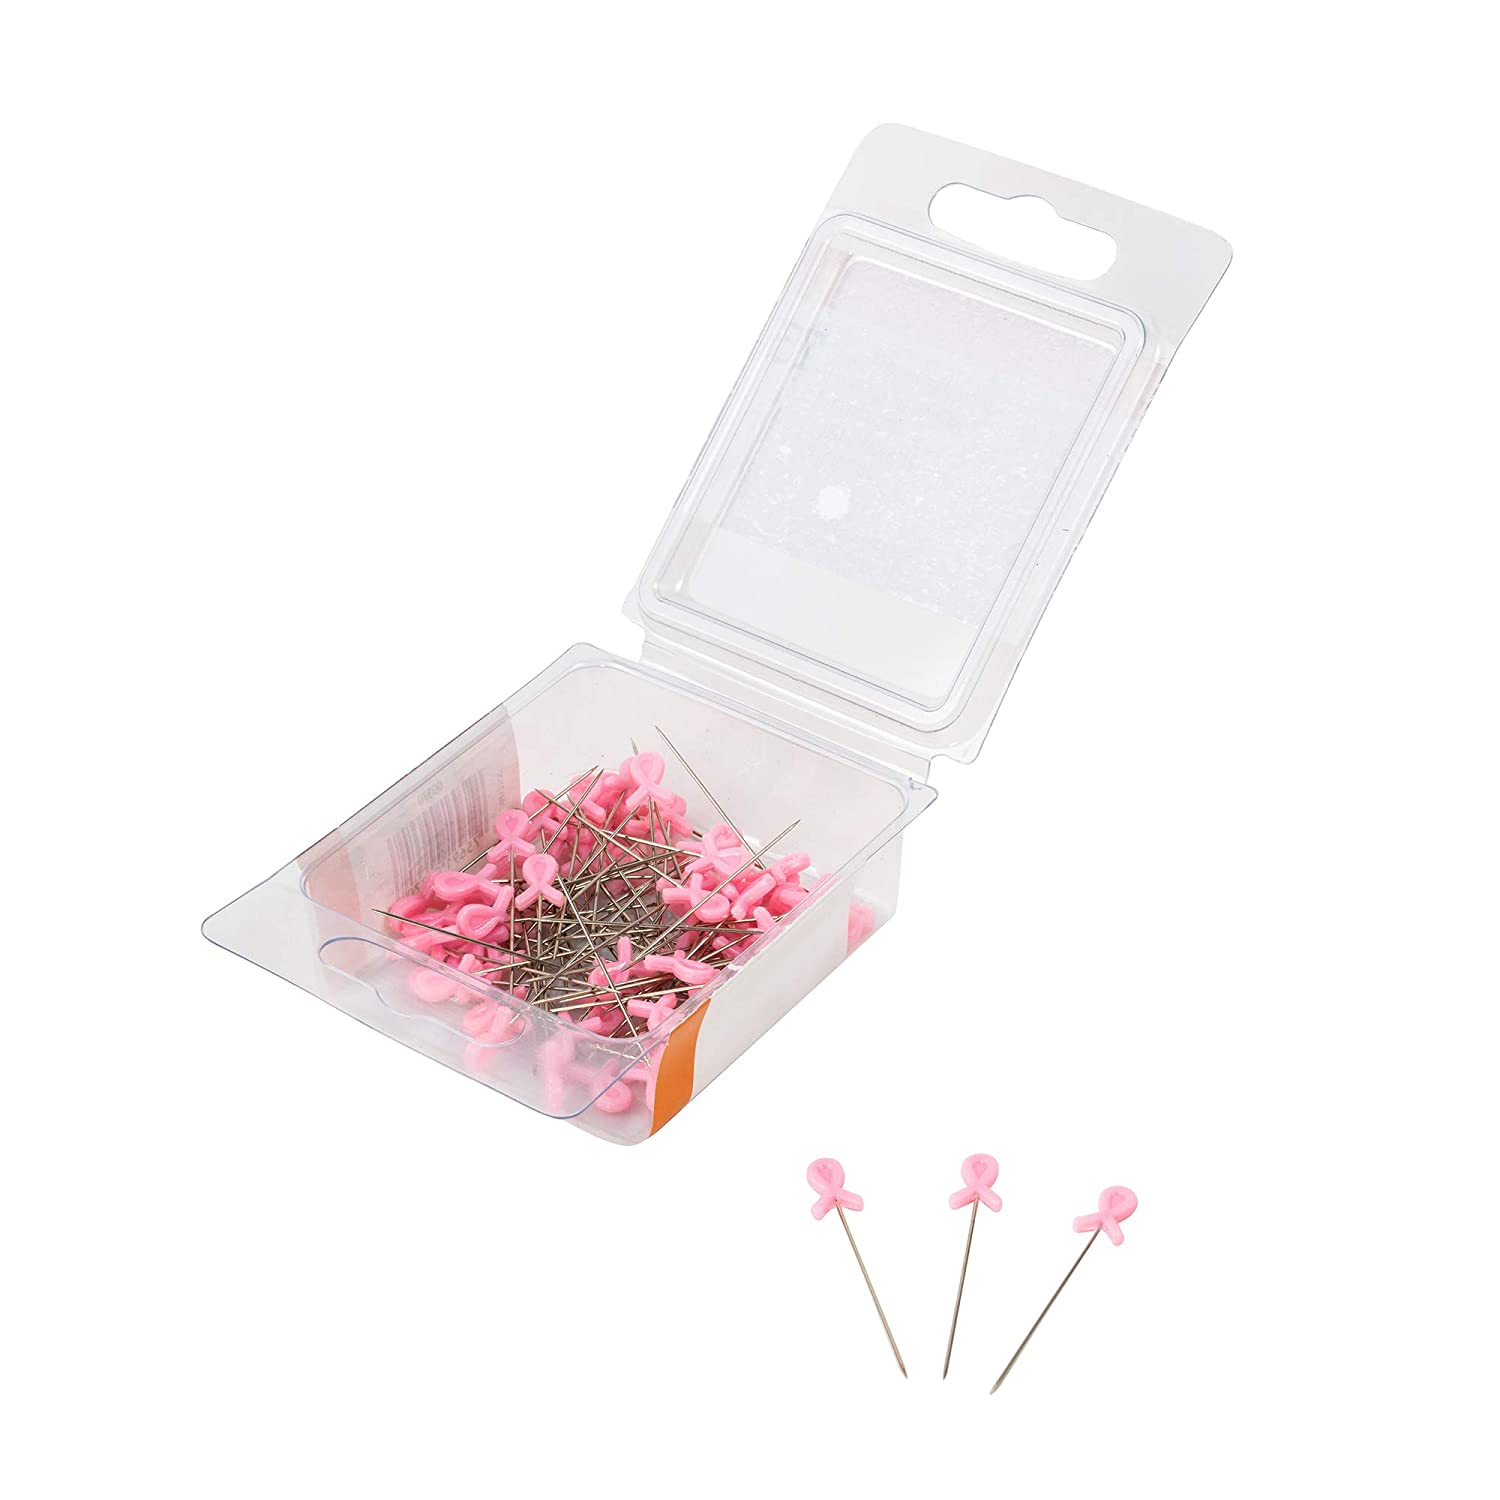 SINGER 00370 Breast Cancer Awareness Decorative Straight Pins 75-Count Size 24